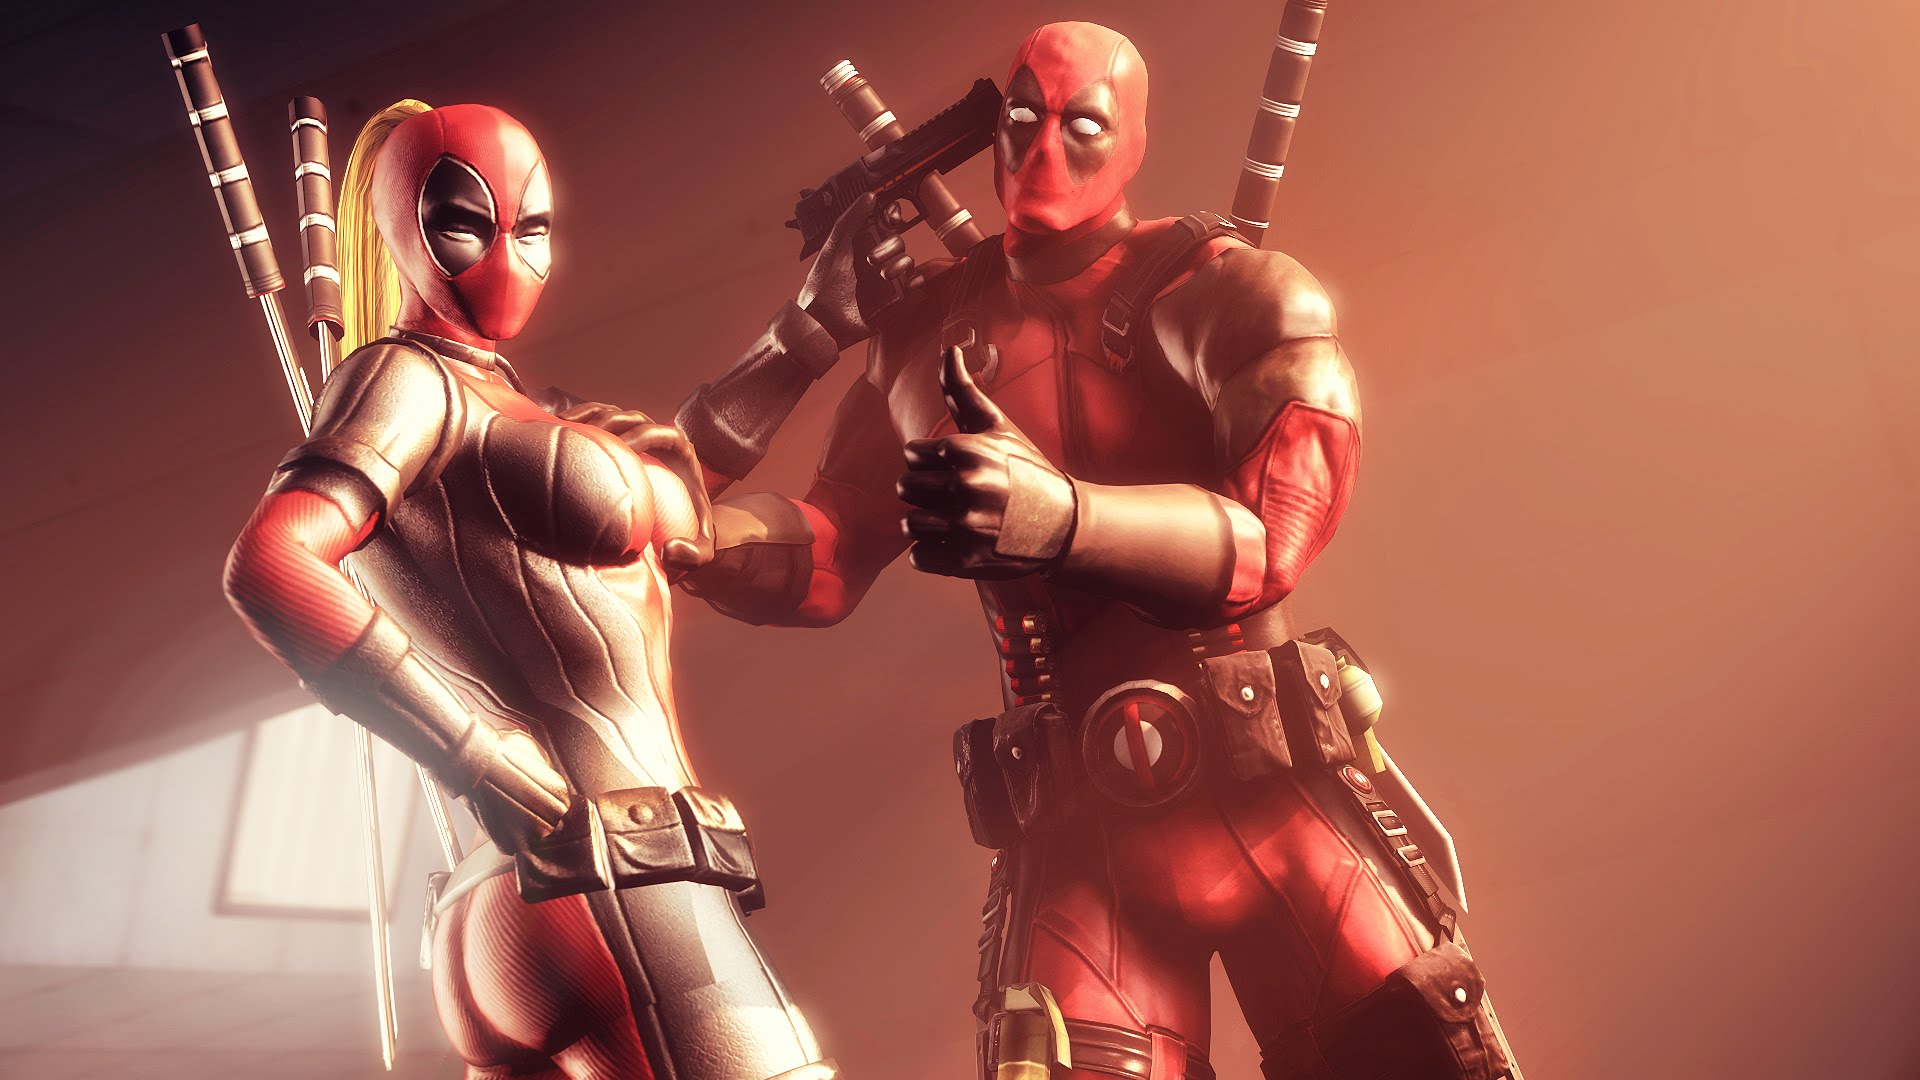 Photo of 4 Amazing Superpowers of Lady Deadpool You Probably Don't Know About